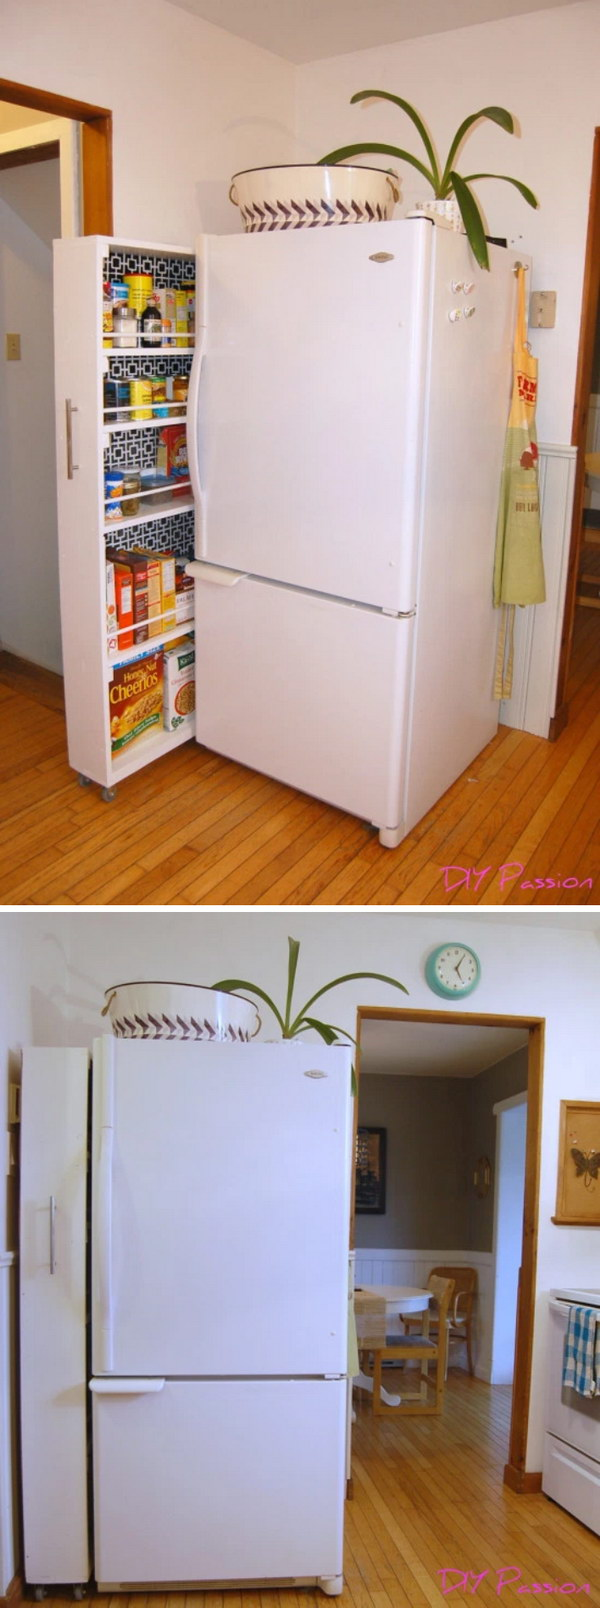 50 easy storage ideas for small spaces 2017 Storage for small apartments